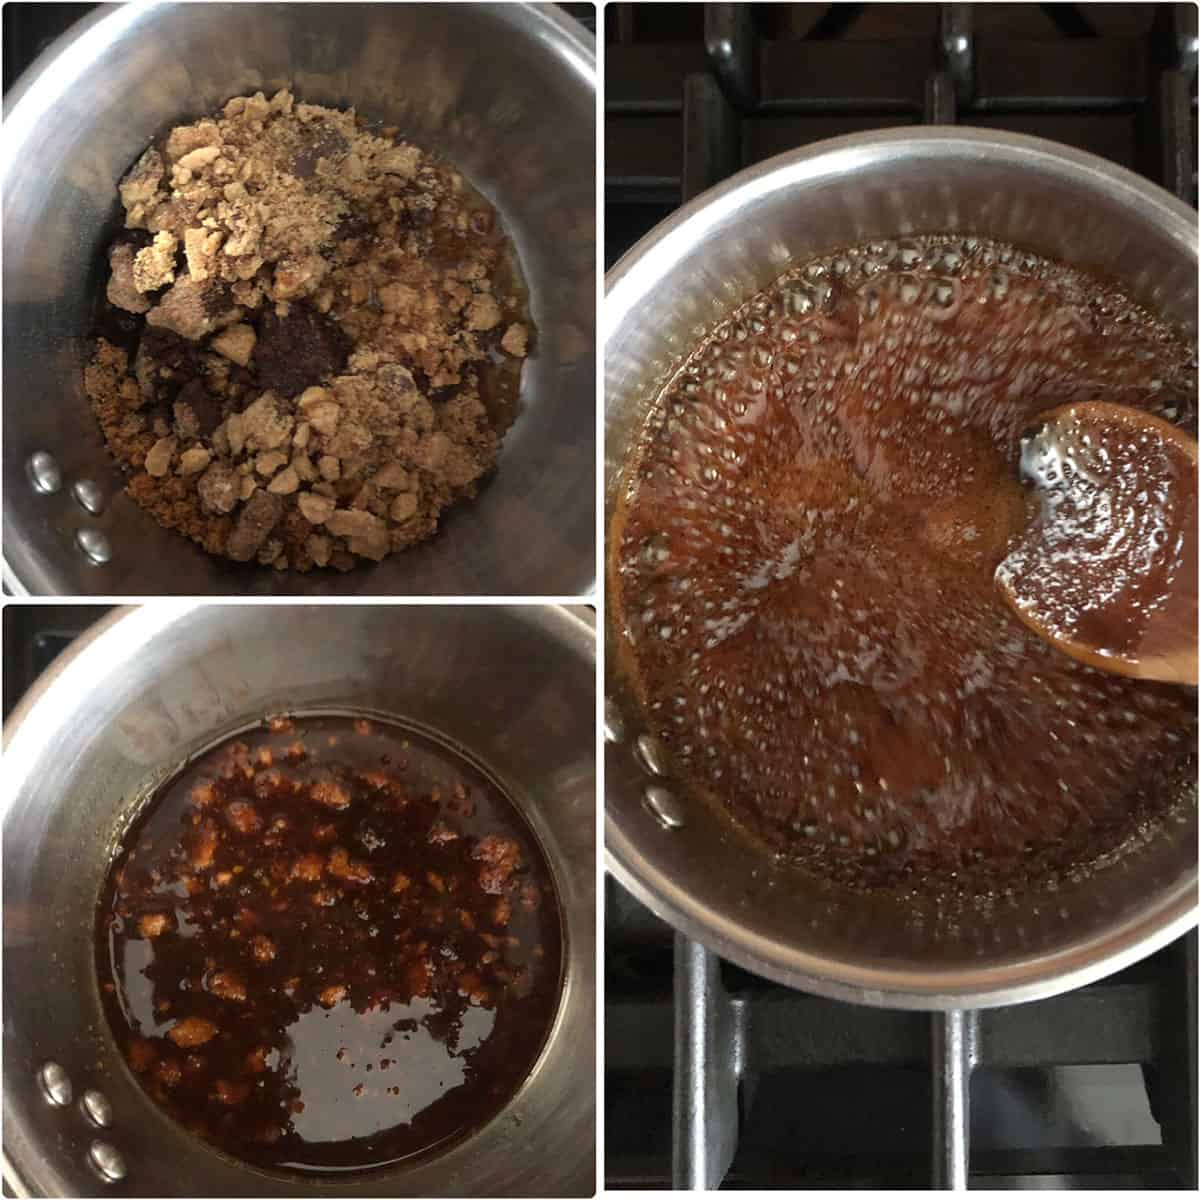 Jaggery melted with water and cooked till thickened